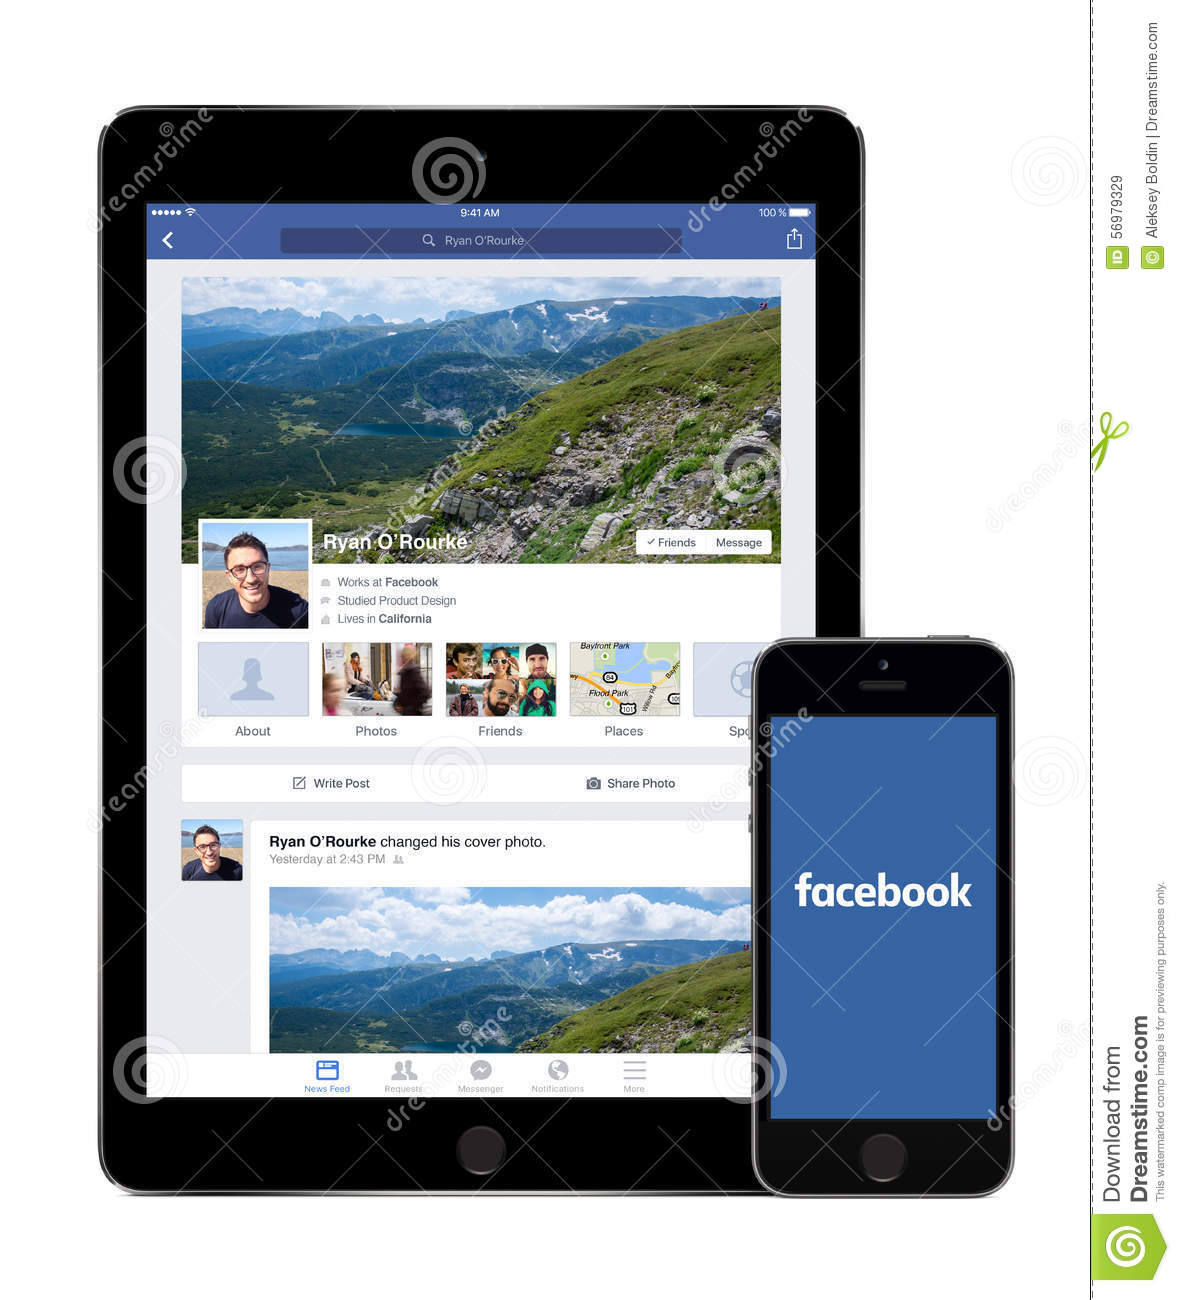 Facebook app on the apple ipad air 2 and iphone 5s displays facebook app on the apple ipad air 2 and iphone 5s displays kristyandbryce Images